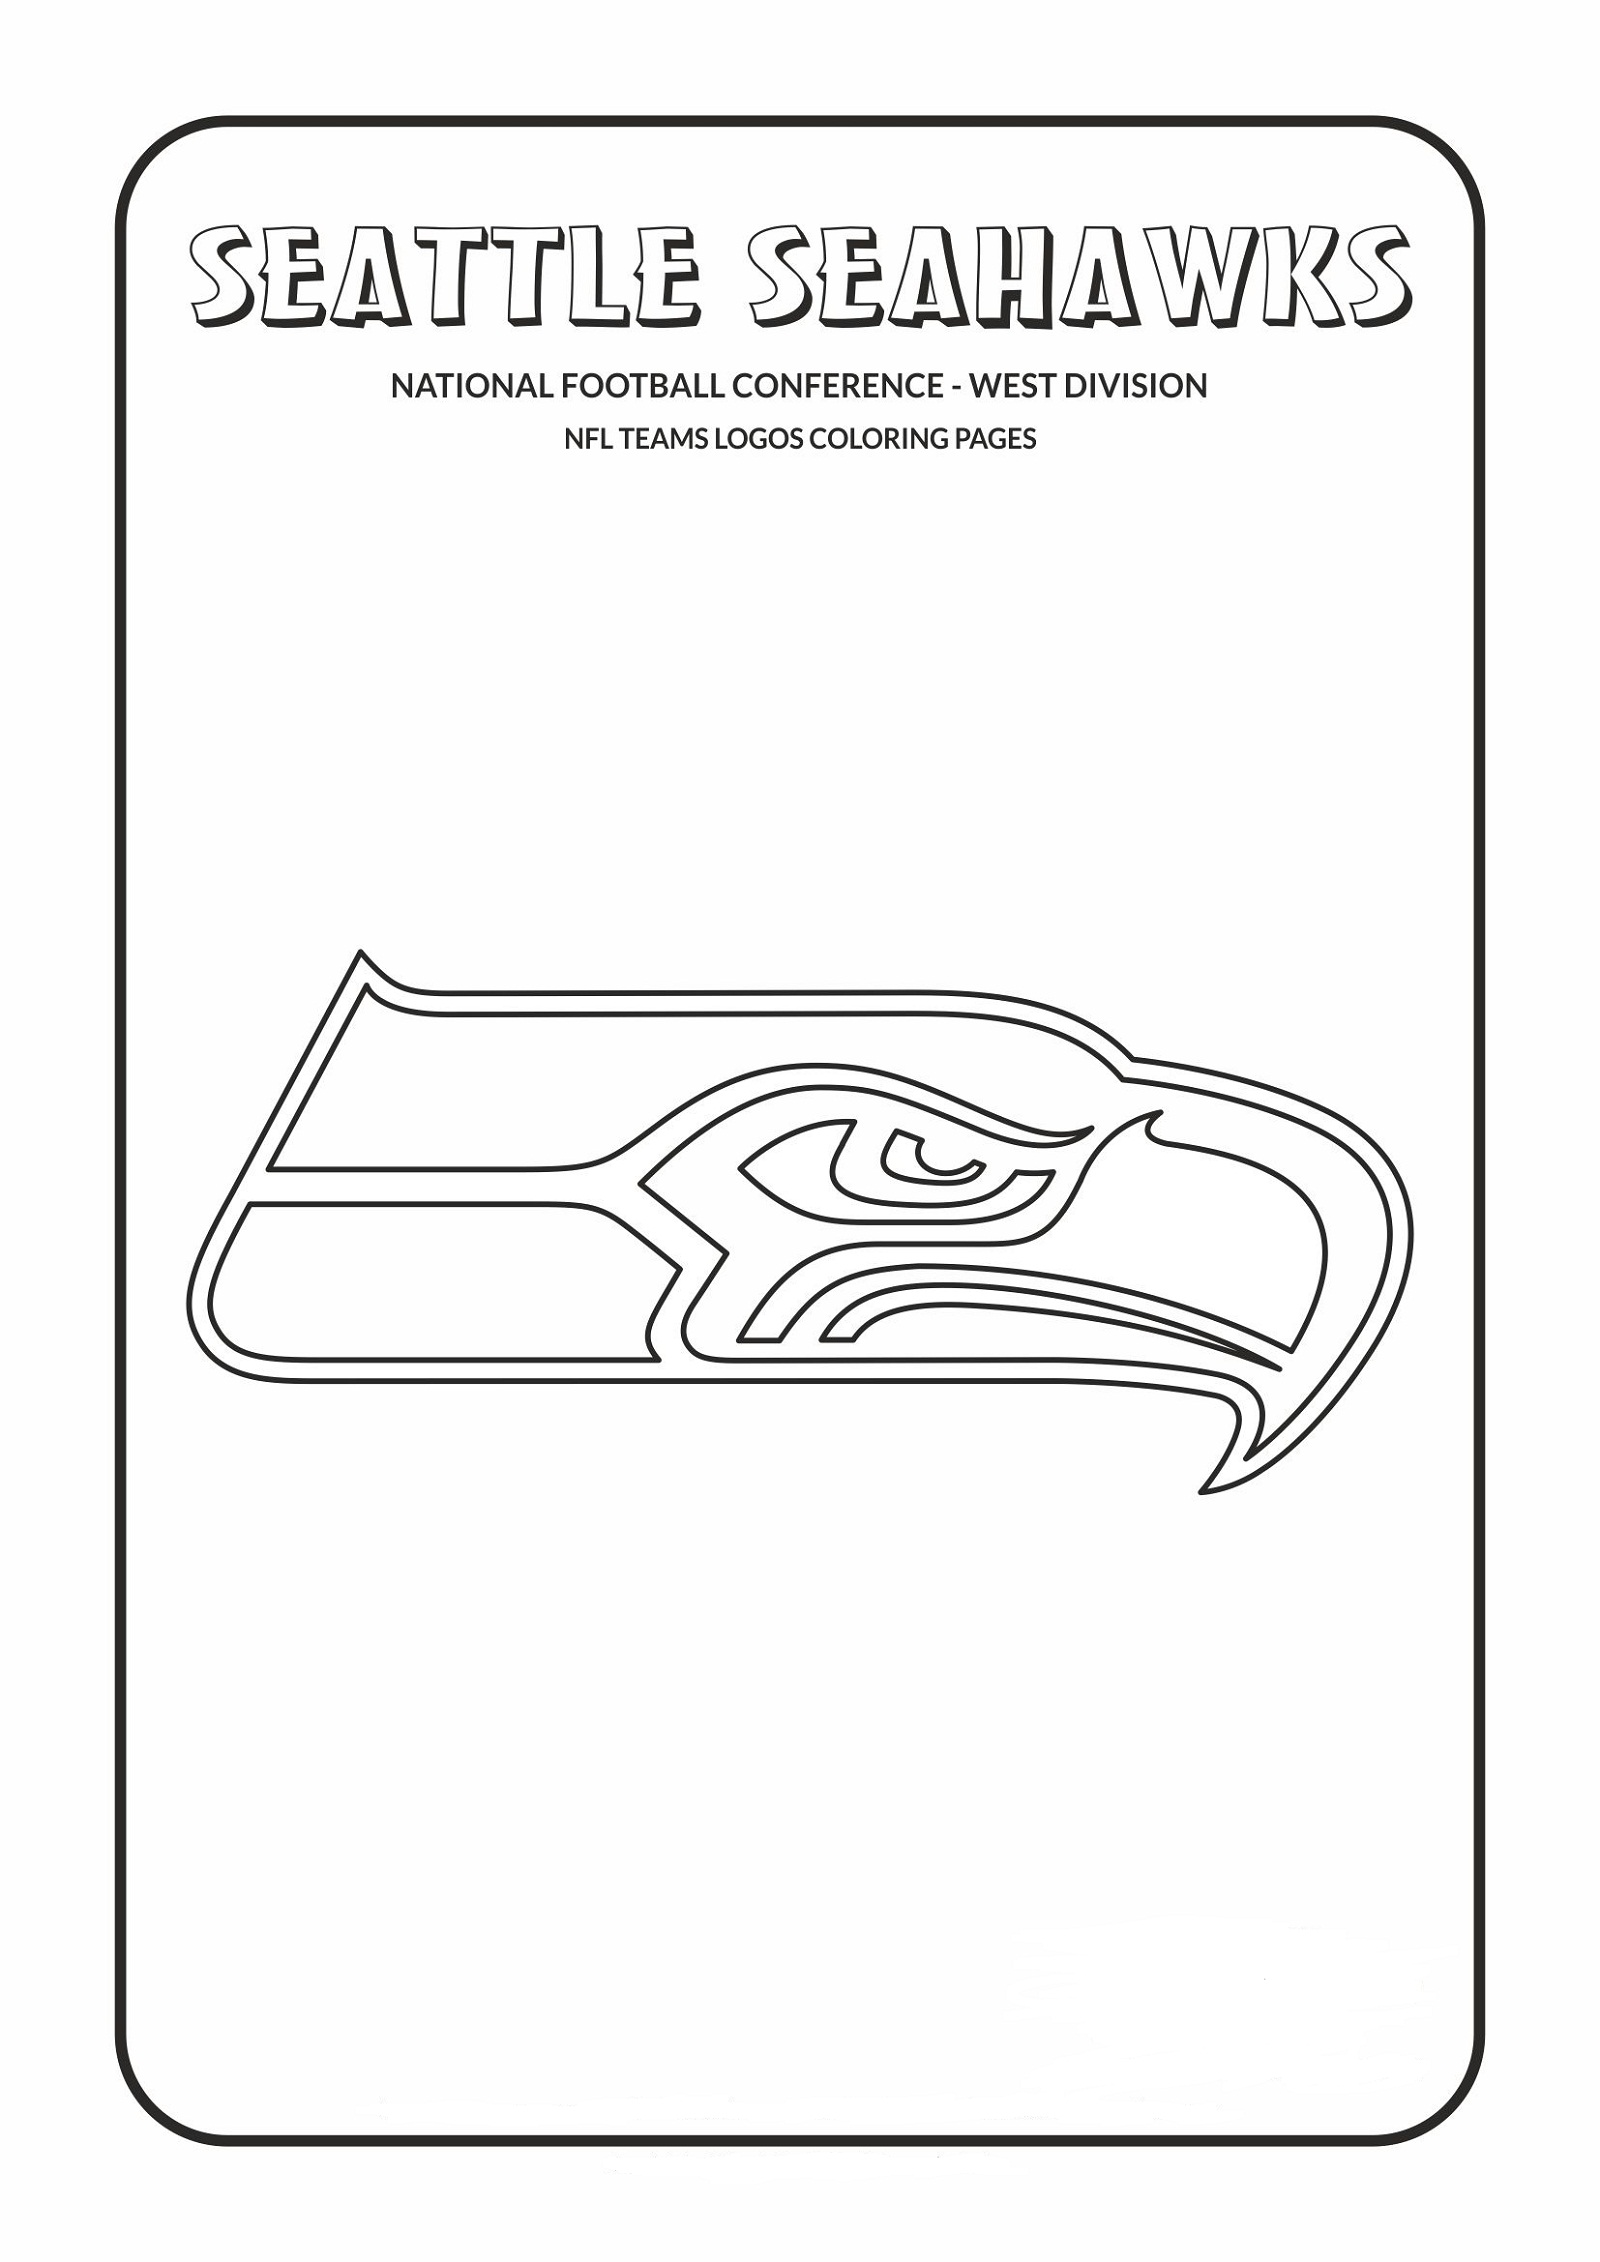 seattle seahawks coloring page seattle seahawks mascot coloring page coloring pages coloring seahawks seattle page